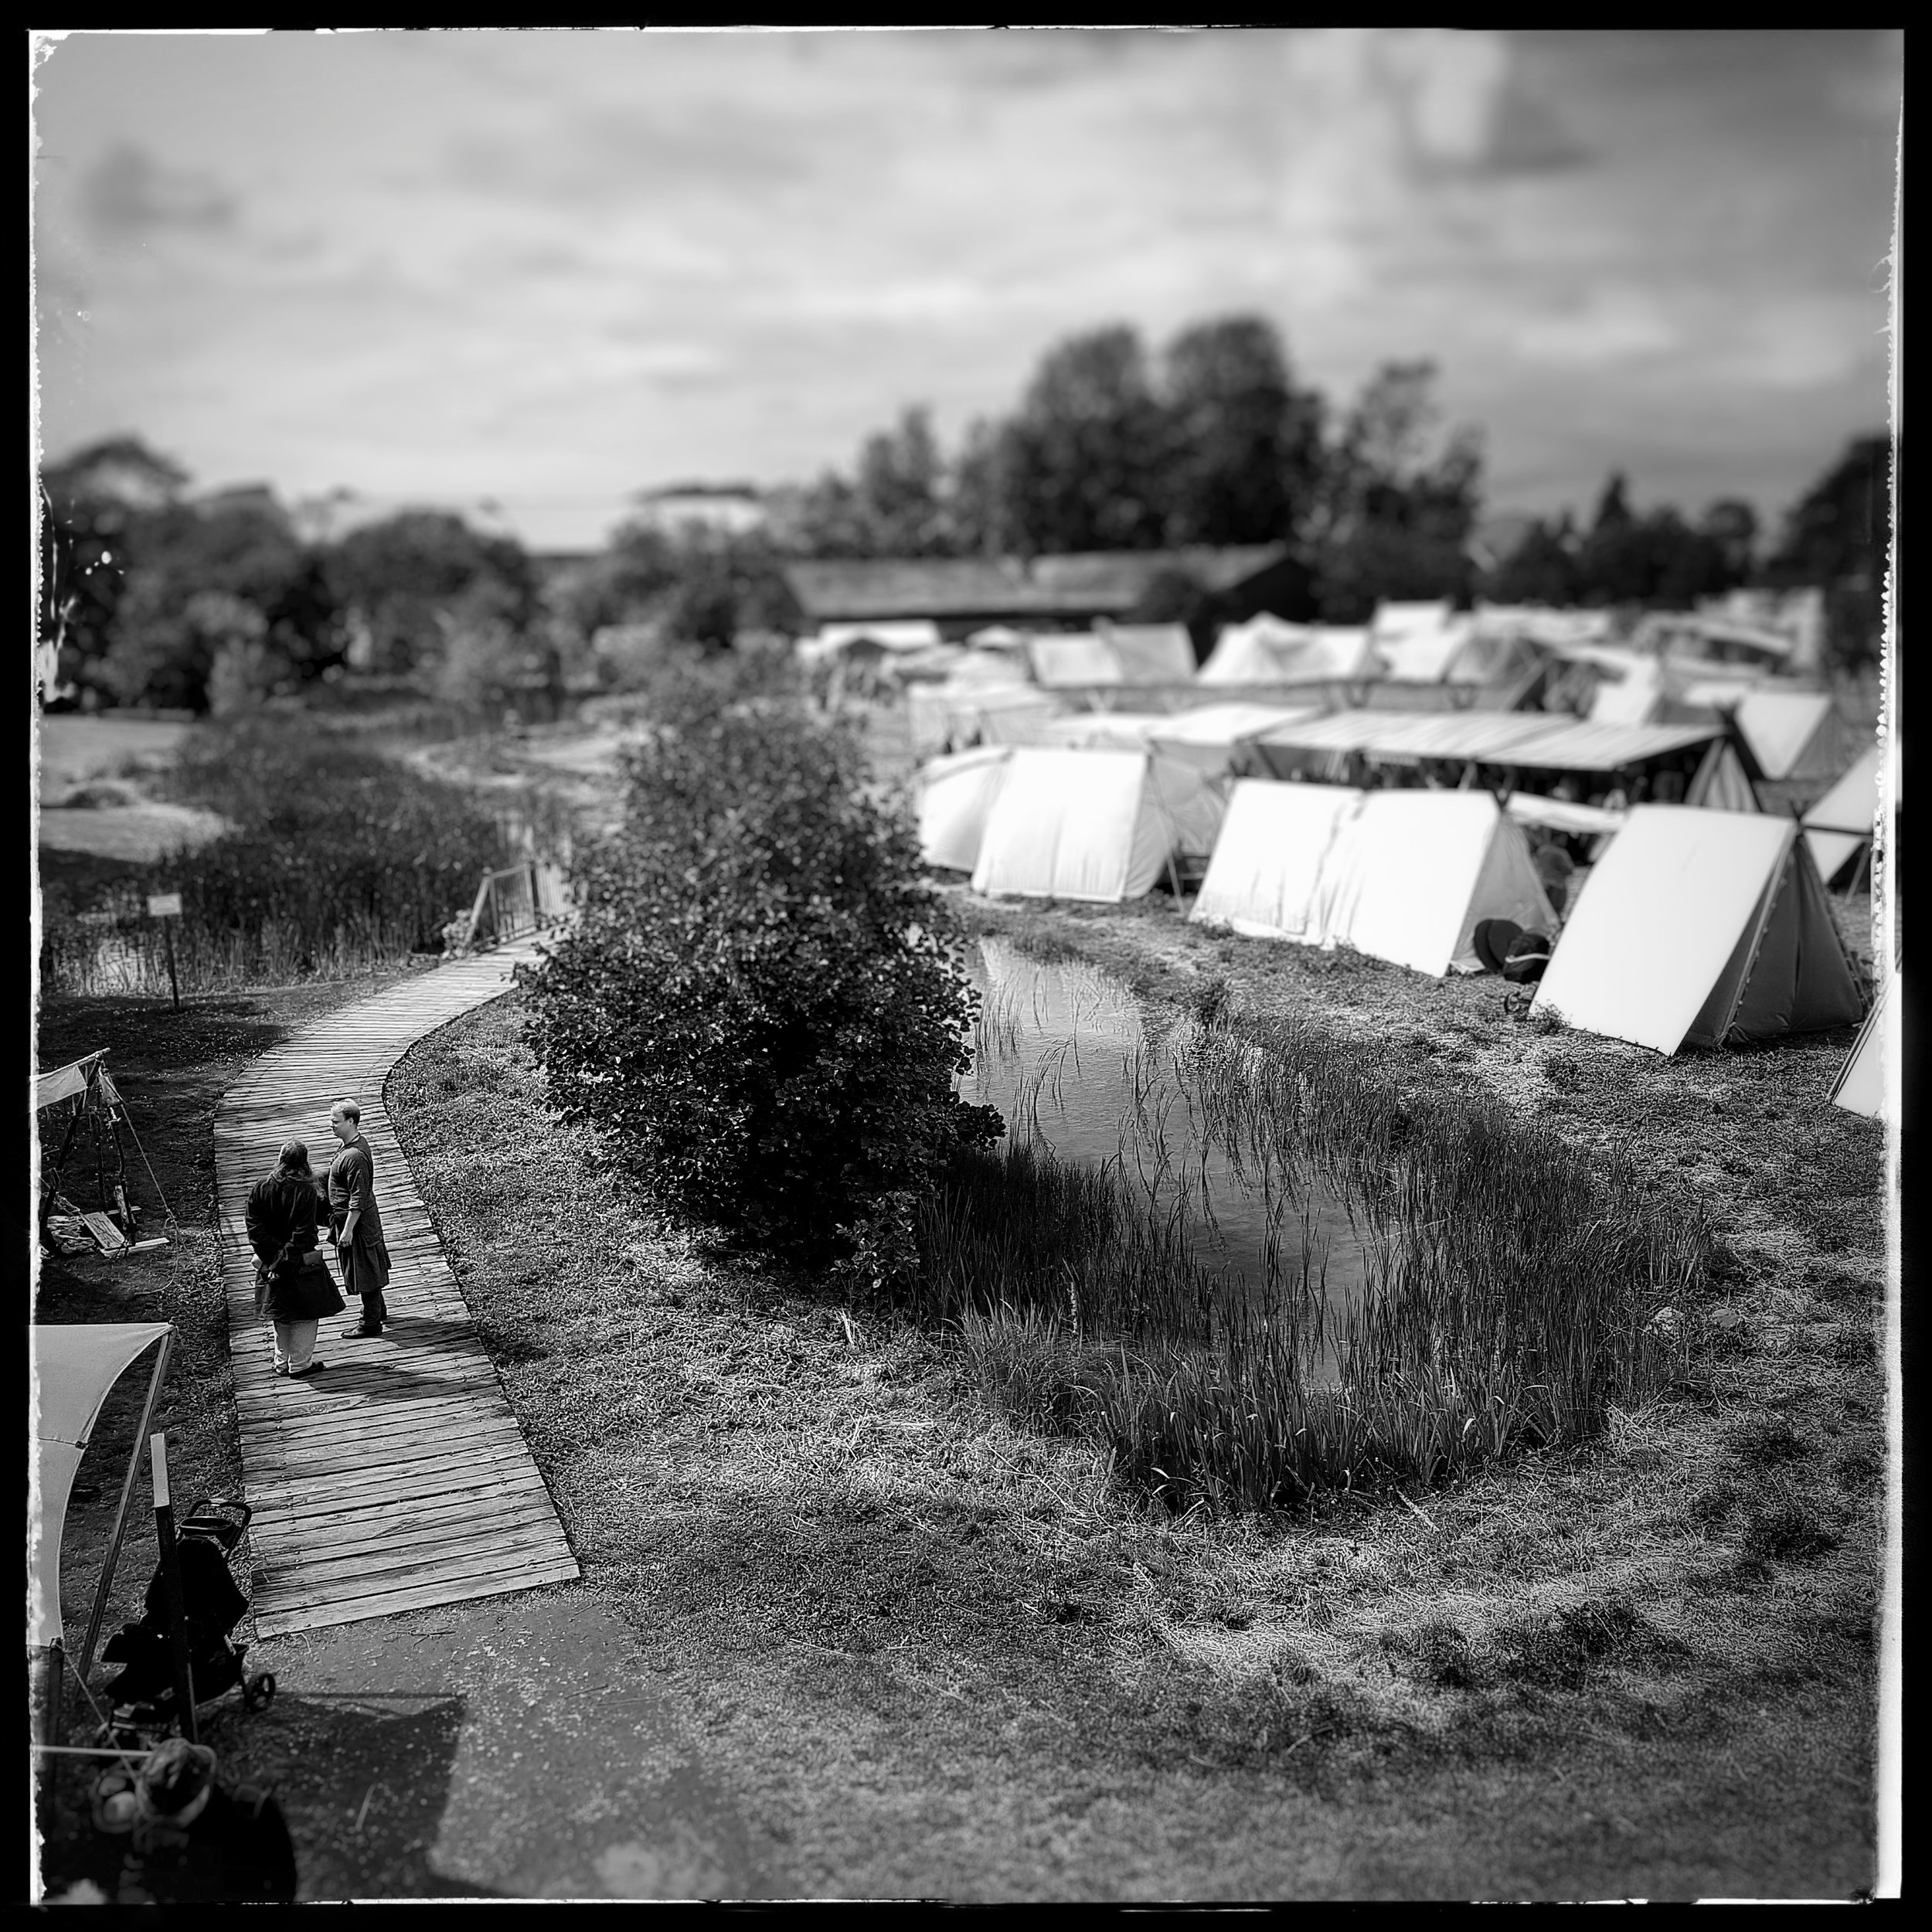 Day 190 - July 9: Market day at the Viking reserve